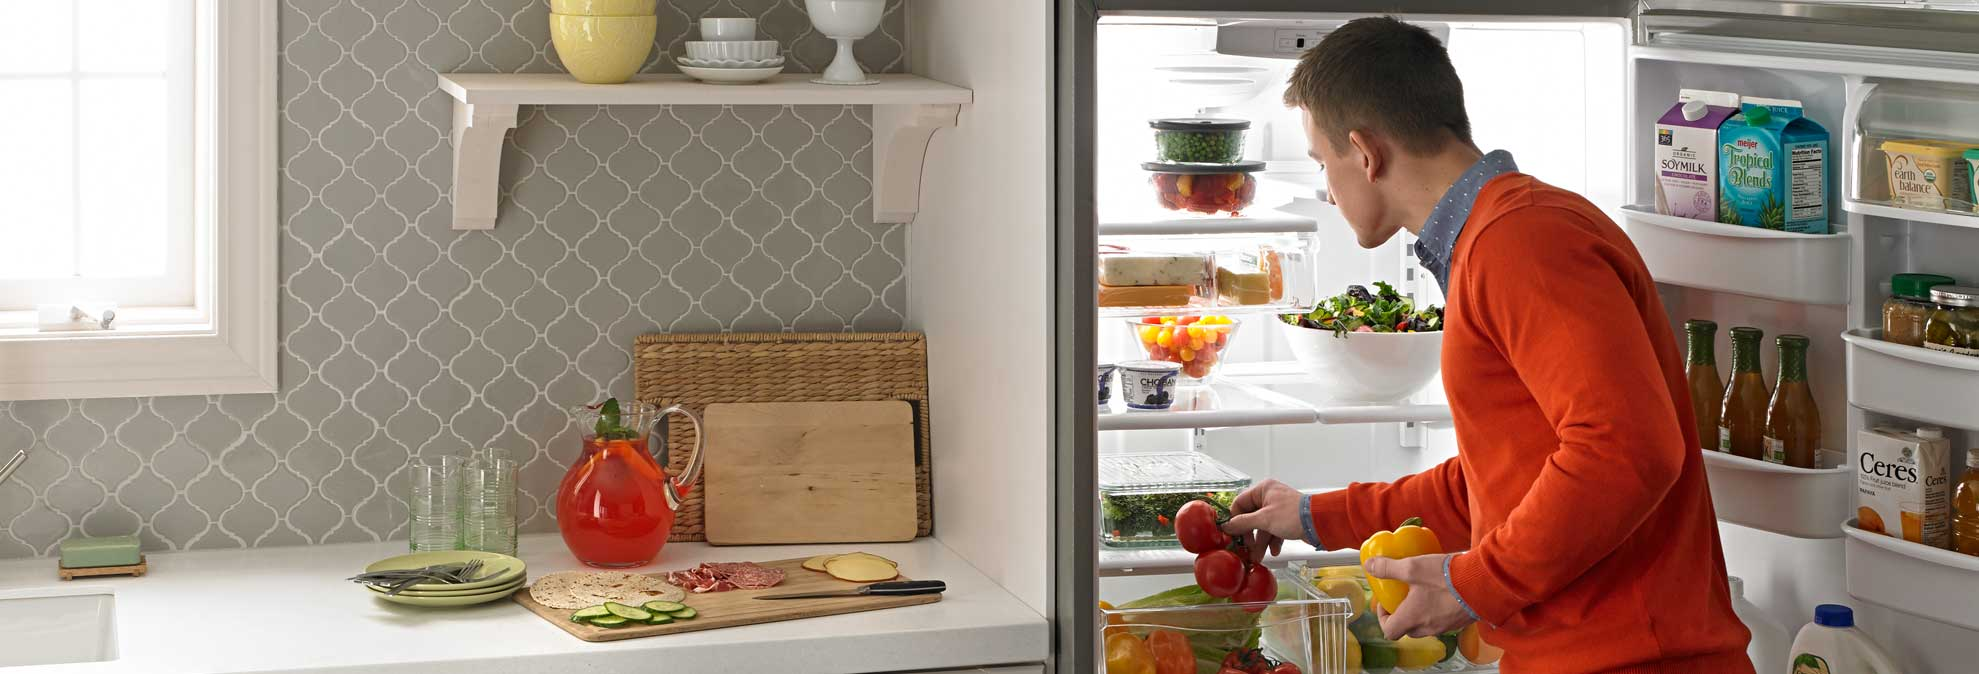 Matching Kitchen Appliances Best Refrigerator Buying Guide Consumer Reports